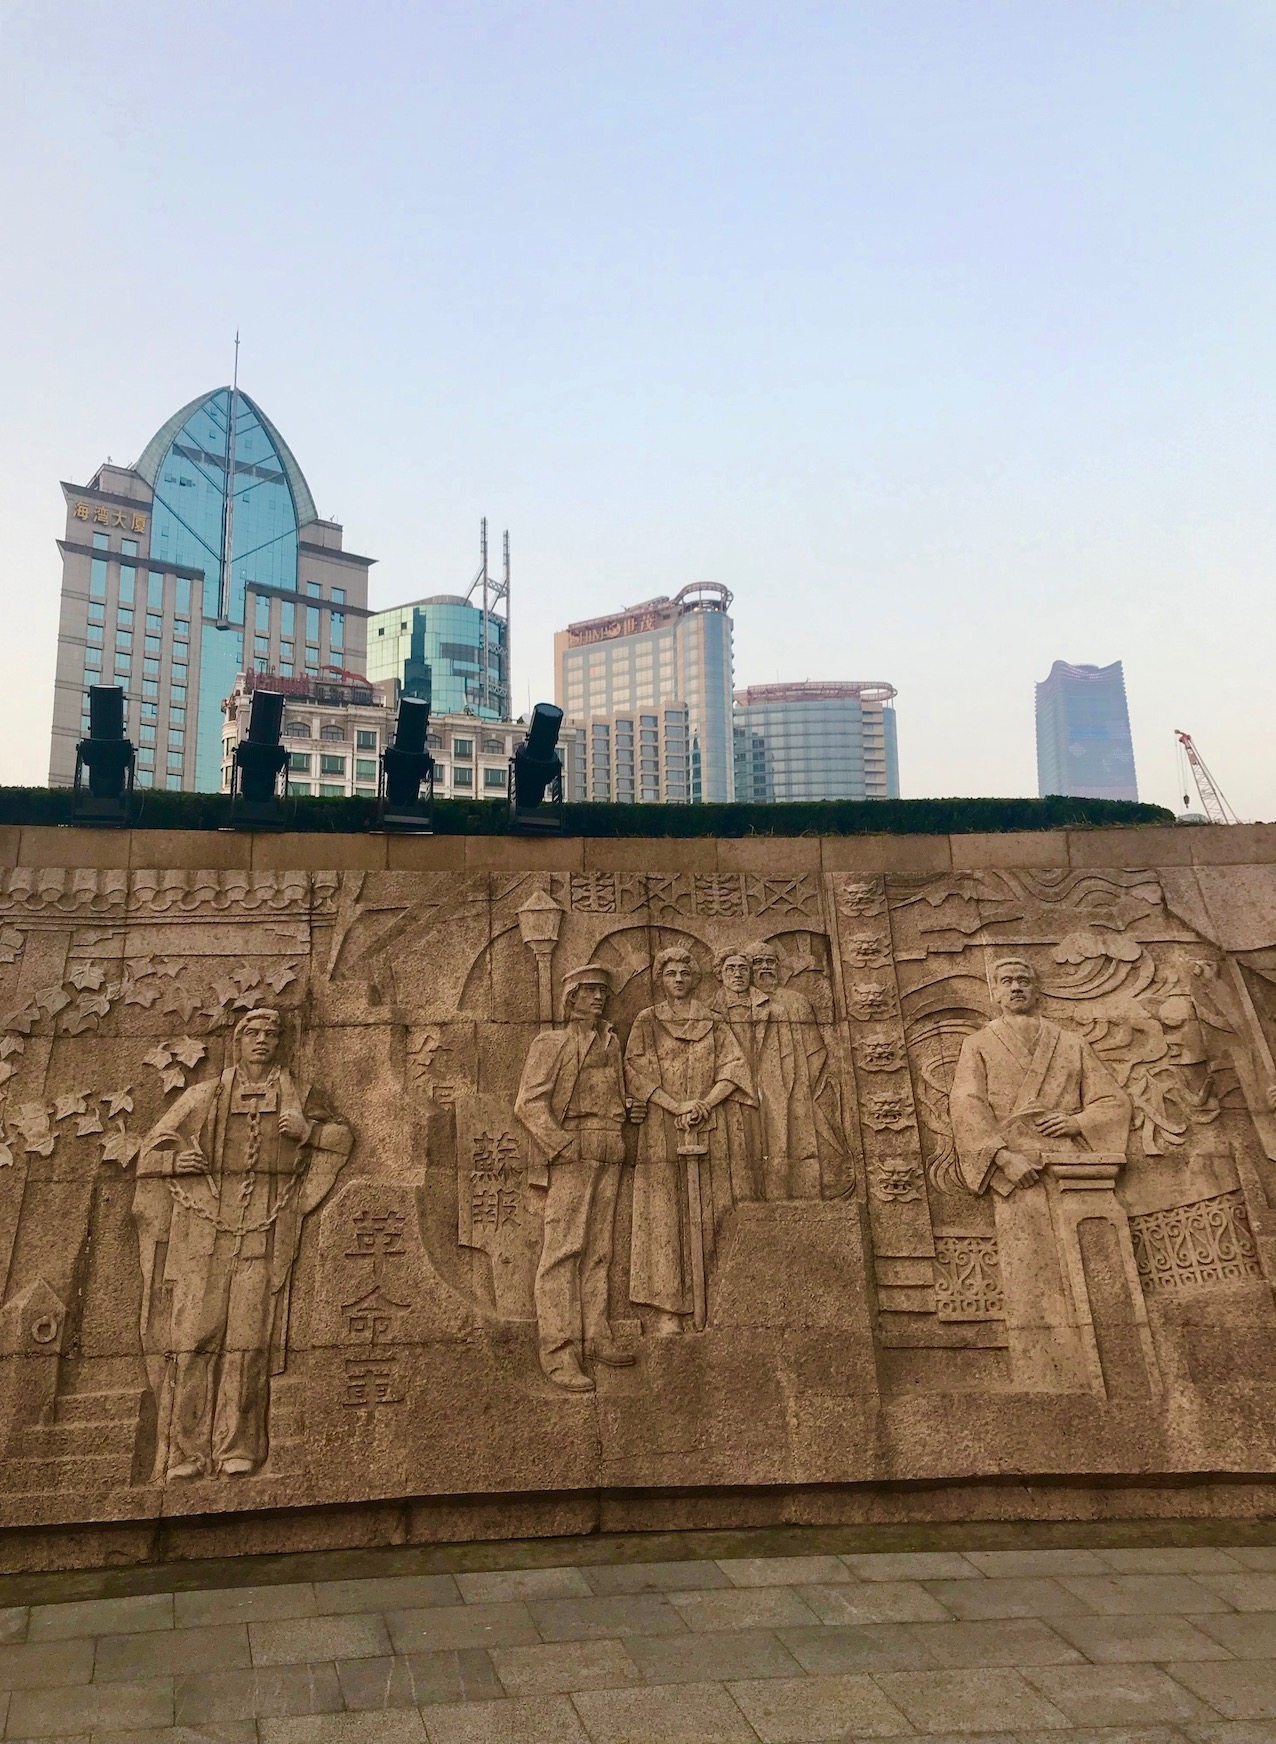 Visit The Monument to the People's Heroes The Bund Shanghai.